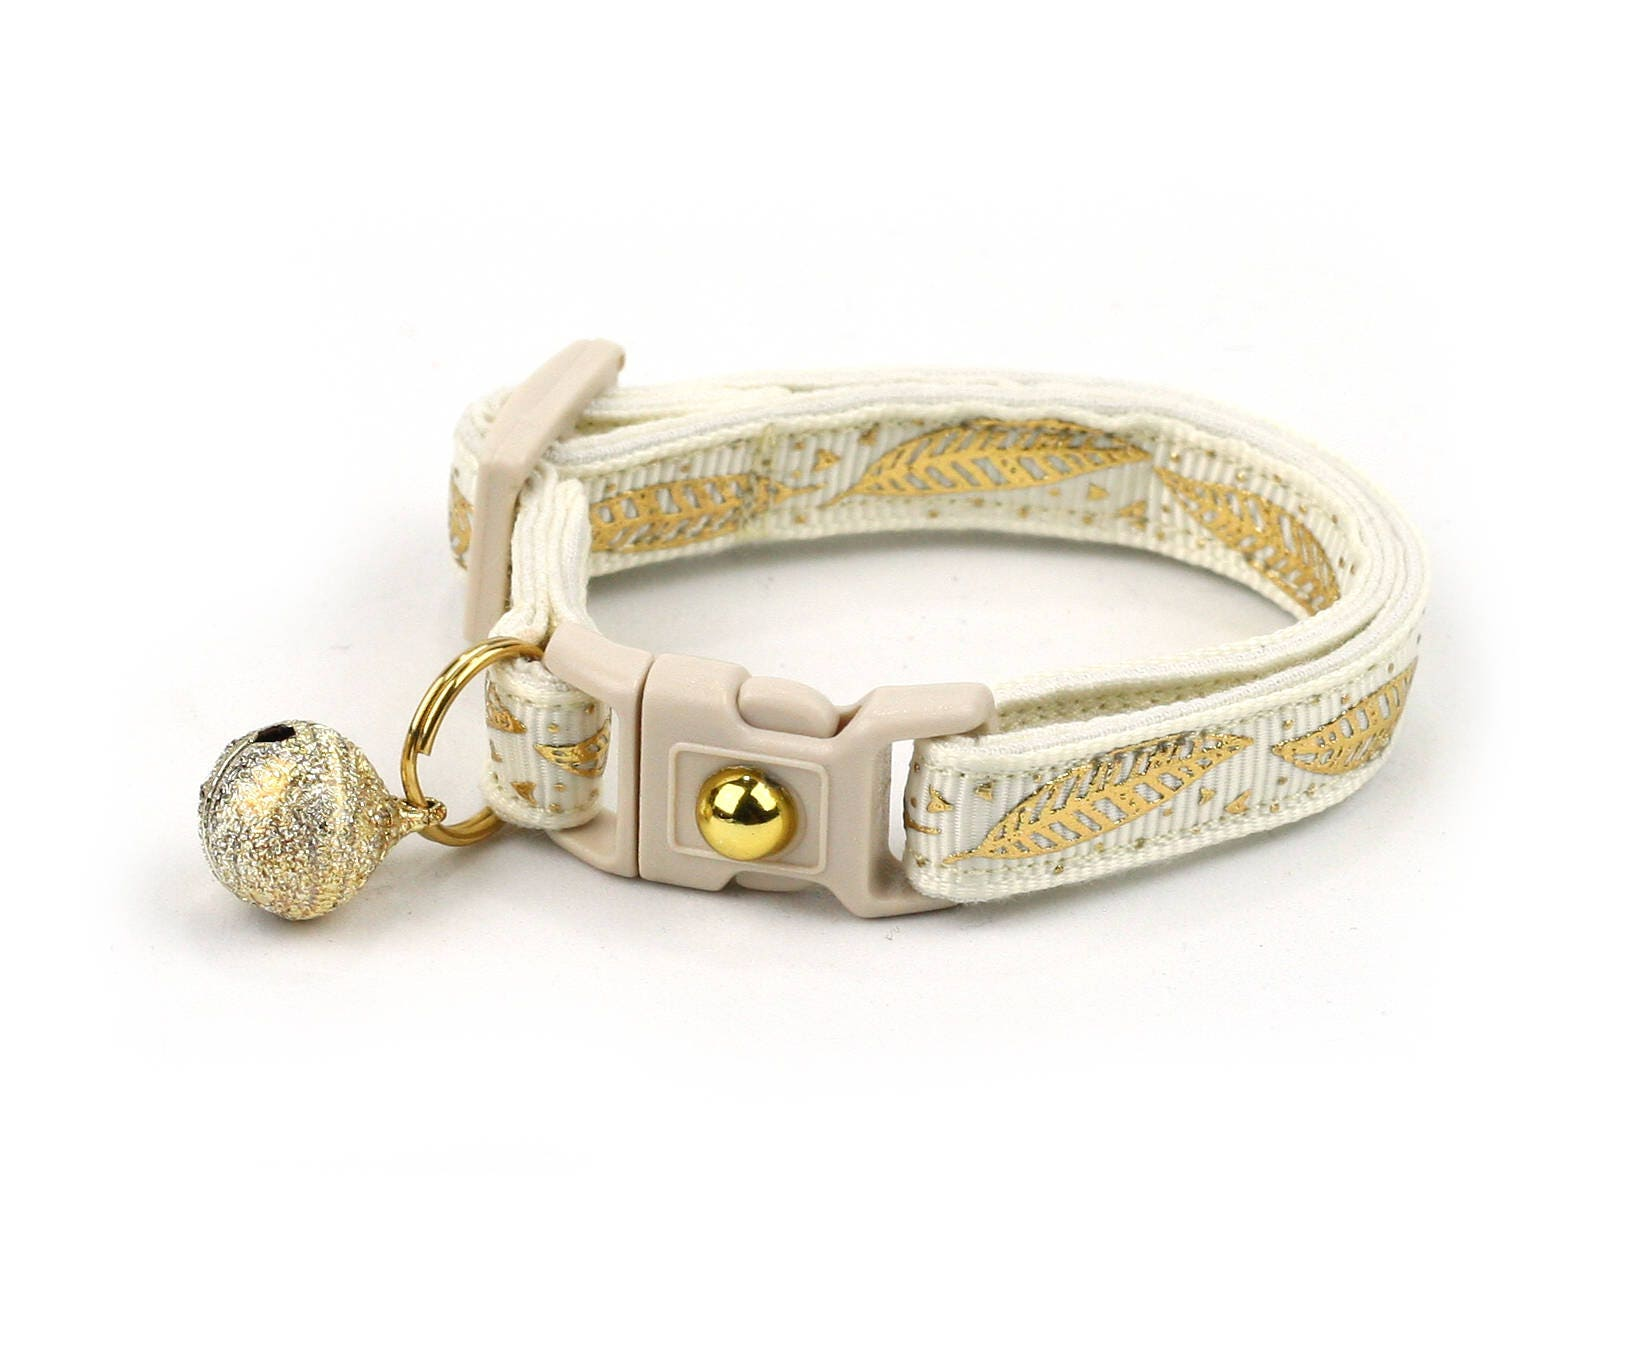 a654609a73bf Feather Cat Collar - Metallic Gold Feathers on Ivory - Small Cat   Kitten  Size or Large Size - Woodland - Boho